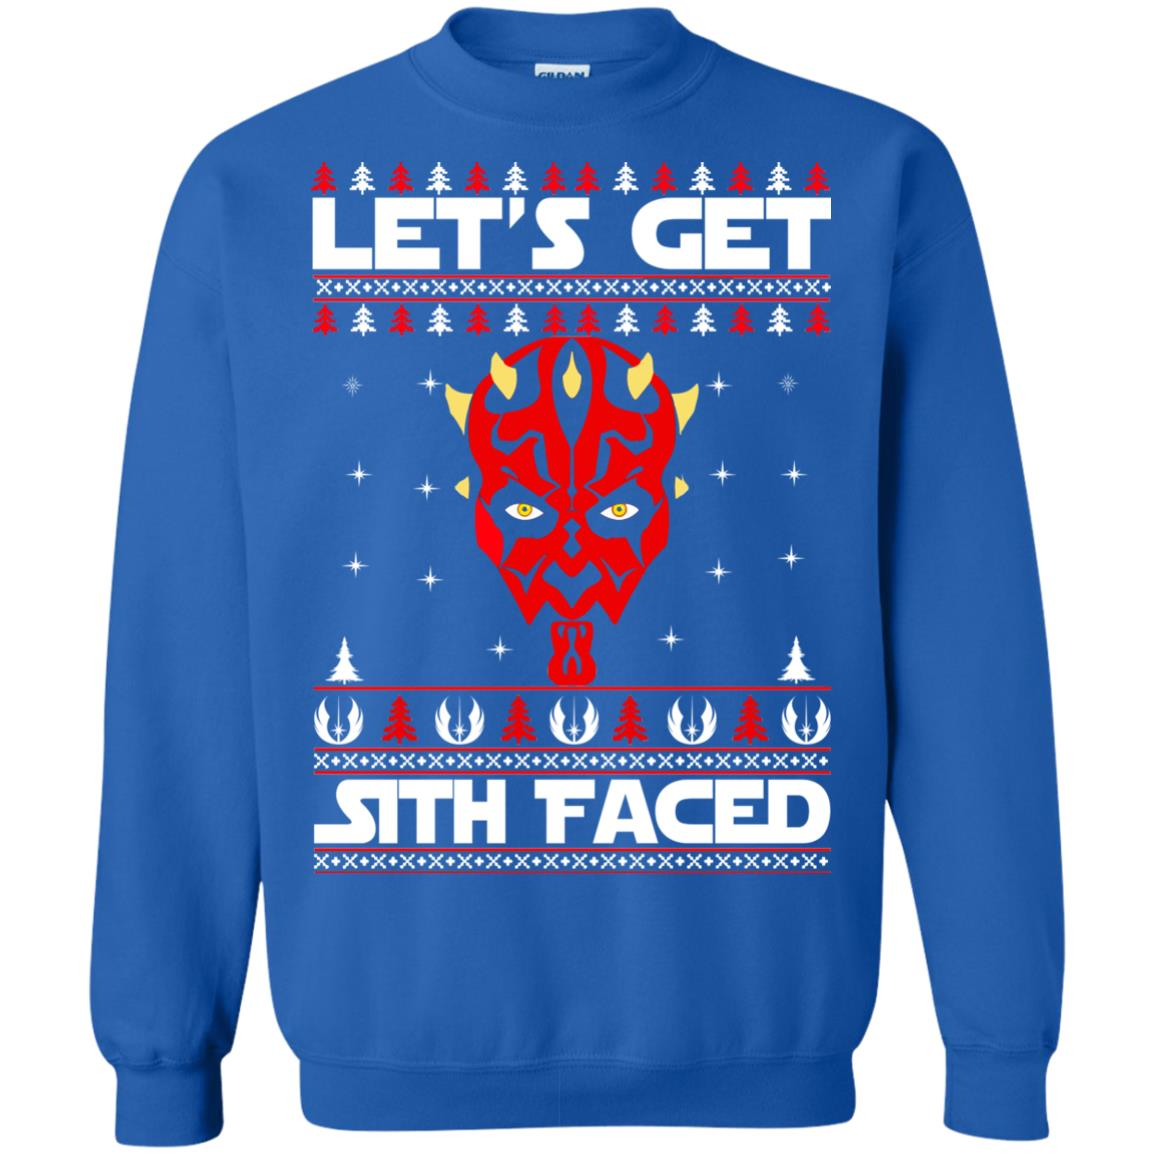 image 1756 - Darth Maul Let's Get Sith Faced Christmas Sweater